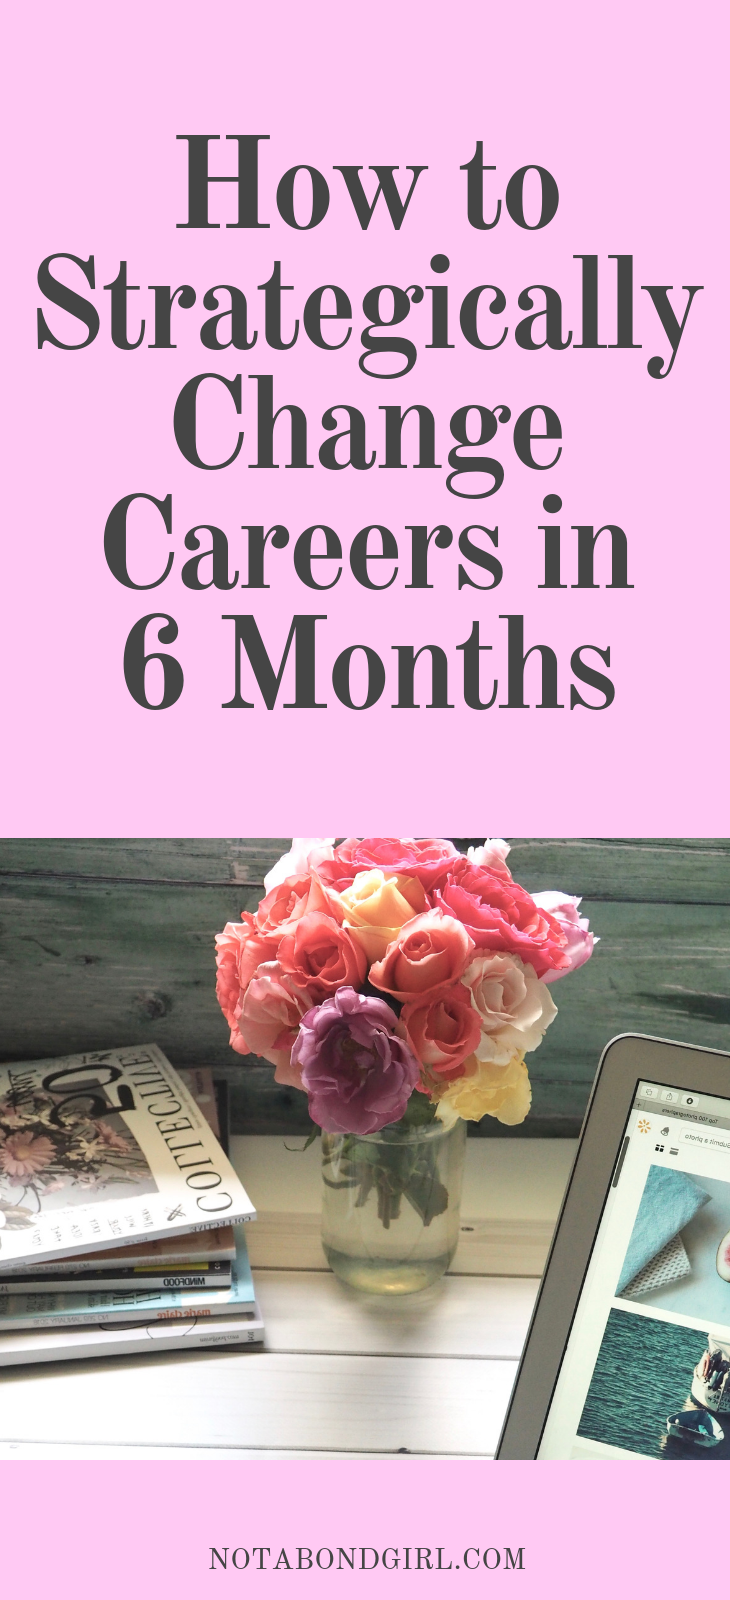 How to Strategically Change Careers in 6 Months